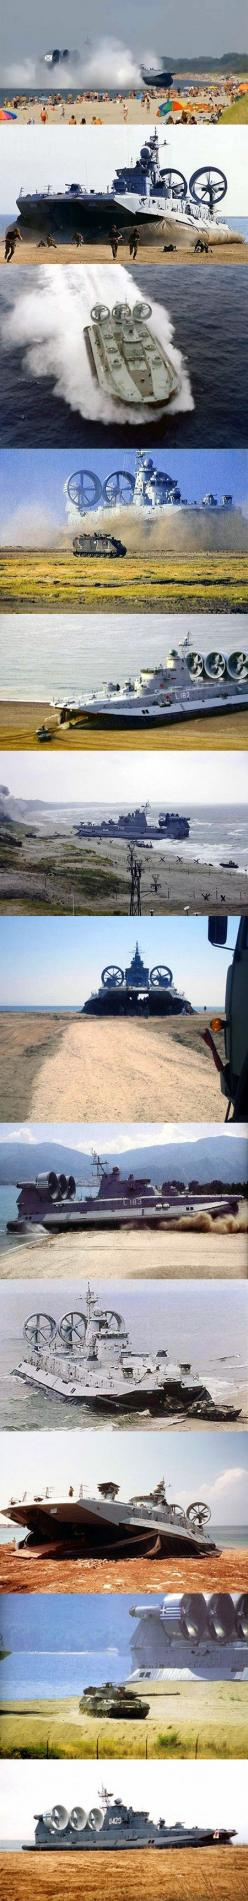 The Zubr-class is a class of air-cushioned landing craft of Soviet design. This class of military hovercraft is, as of 2012, the world's largest hovercraft. It is designed to sealift landing assault units (such as marines or tanks) from equipped/non-equip